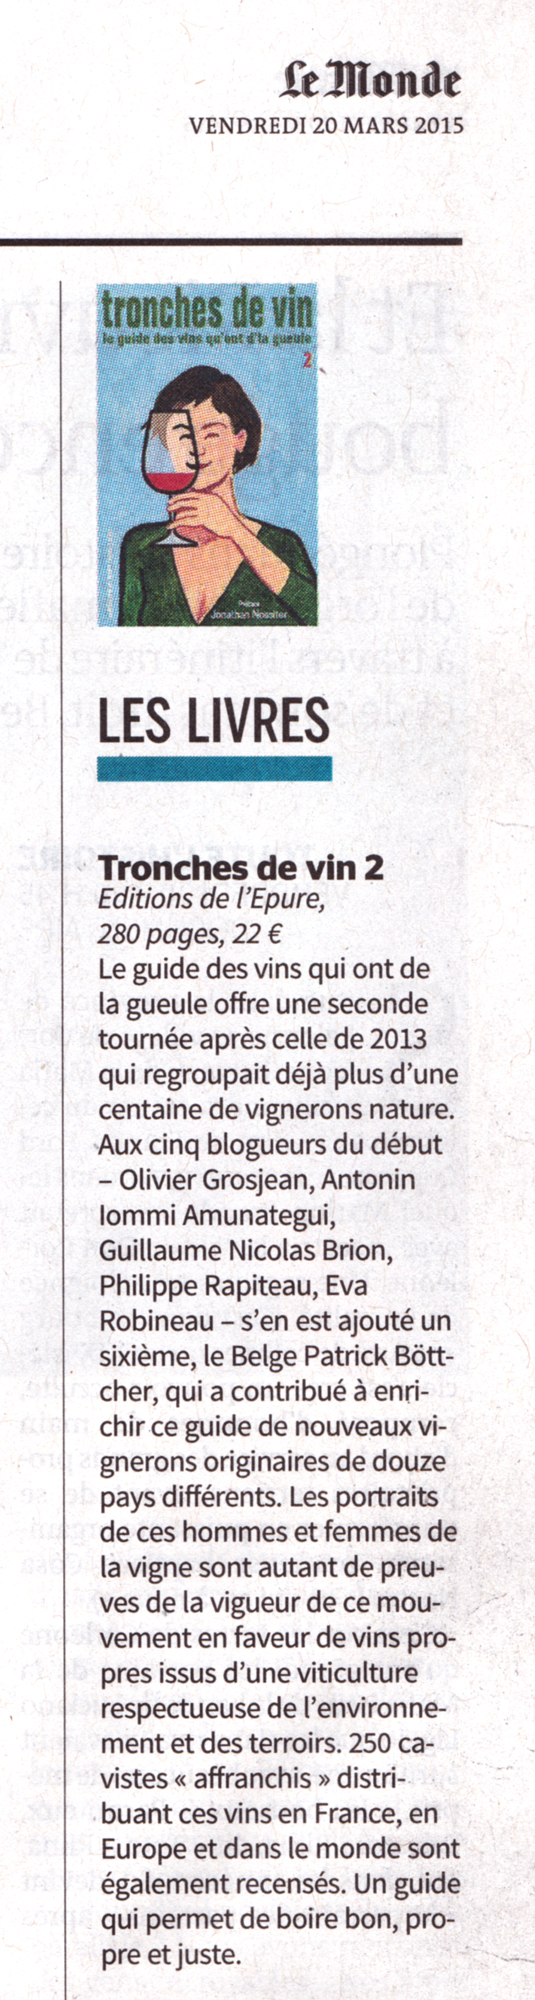 20150320_LeMonde_web